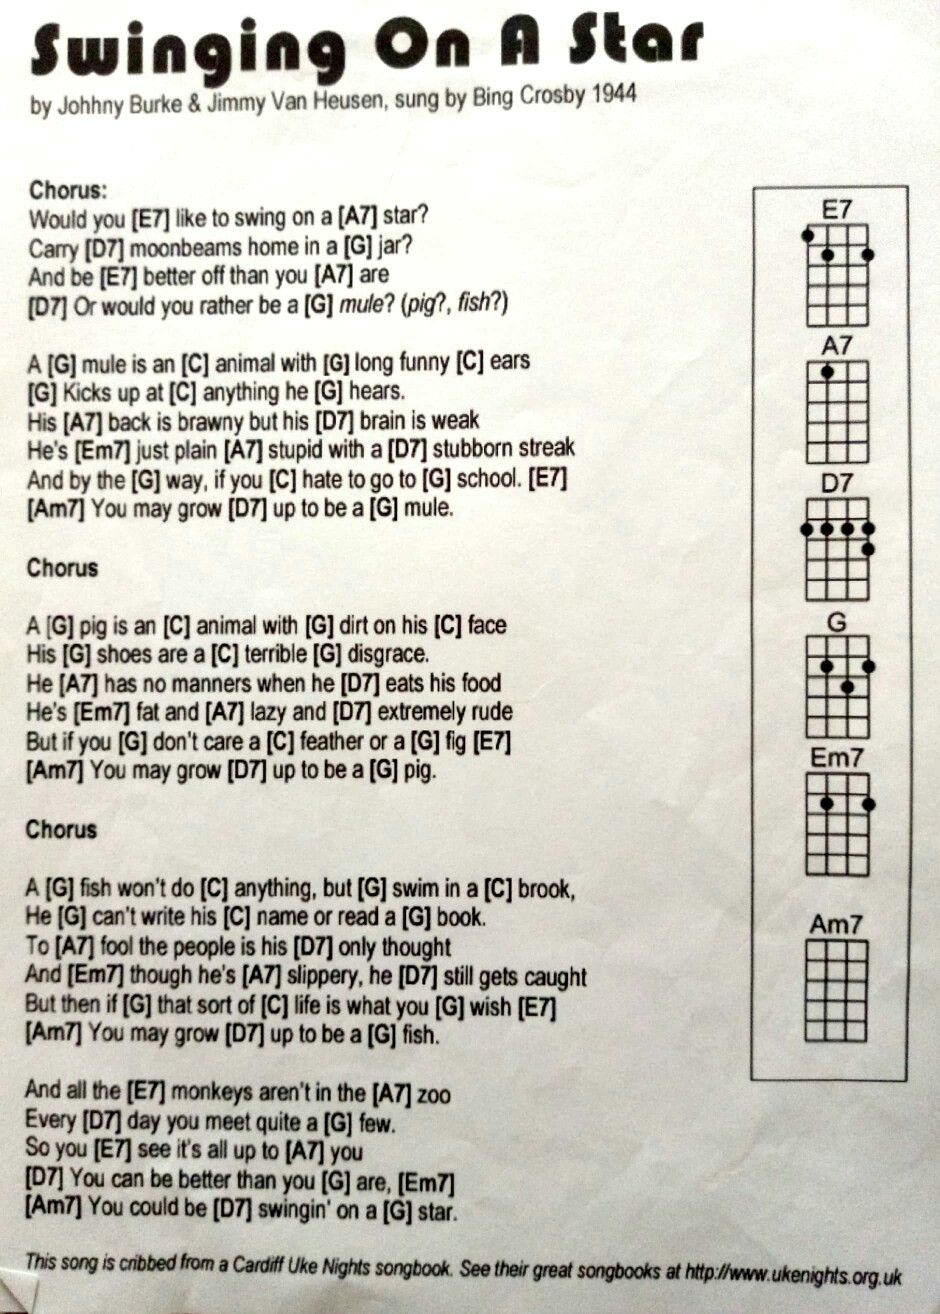 Pin By Susan Roaten On Ukelele Love In 2018 Pinterest Ukulele Re Not Sure How To Read Chord Charts Diagrams Chords Songs Guitar Lyrics And Tabs Cool